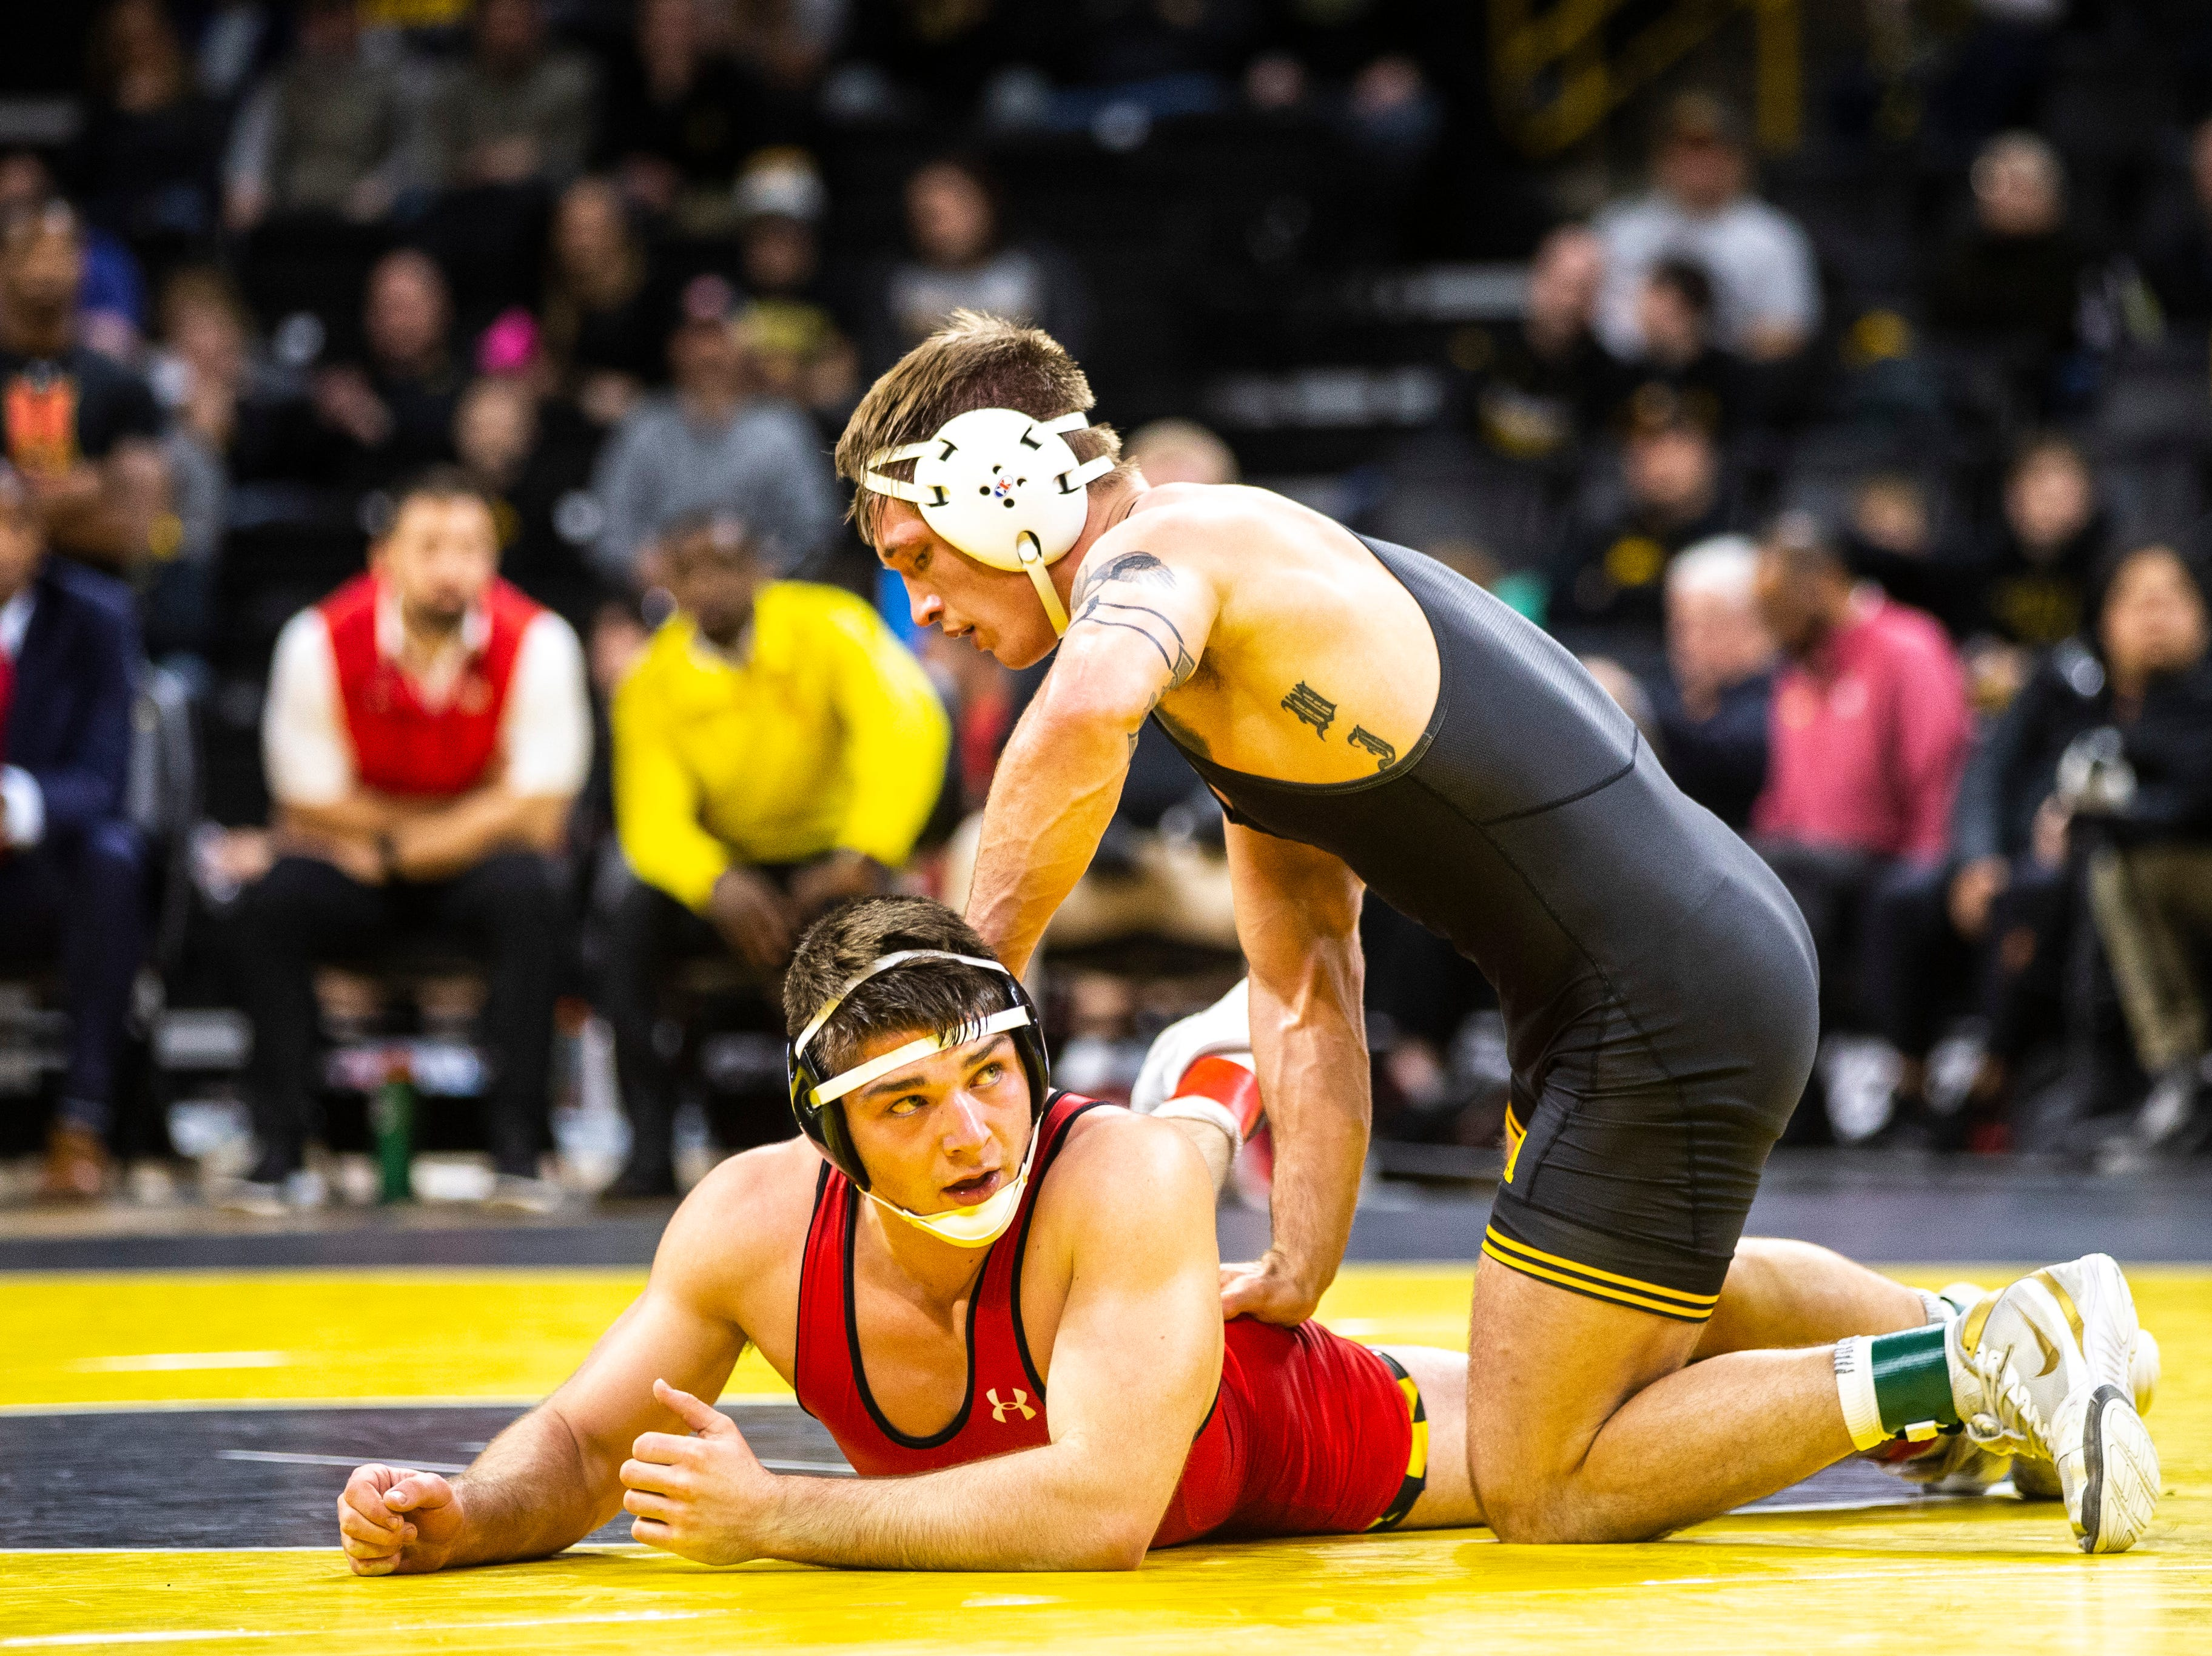 Iowa's Cash Wilcke wrestles Maryland's Kyle Jasenski at 184 during a NCAA Big Ten Conference wrestling dual on Friday, Feb. 8, 2019 at Carver-Hawkeye Arena in Iowa City, Iowa.